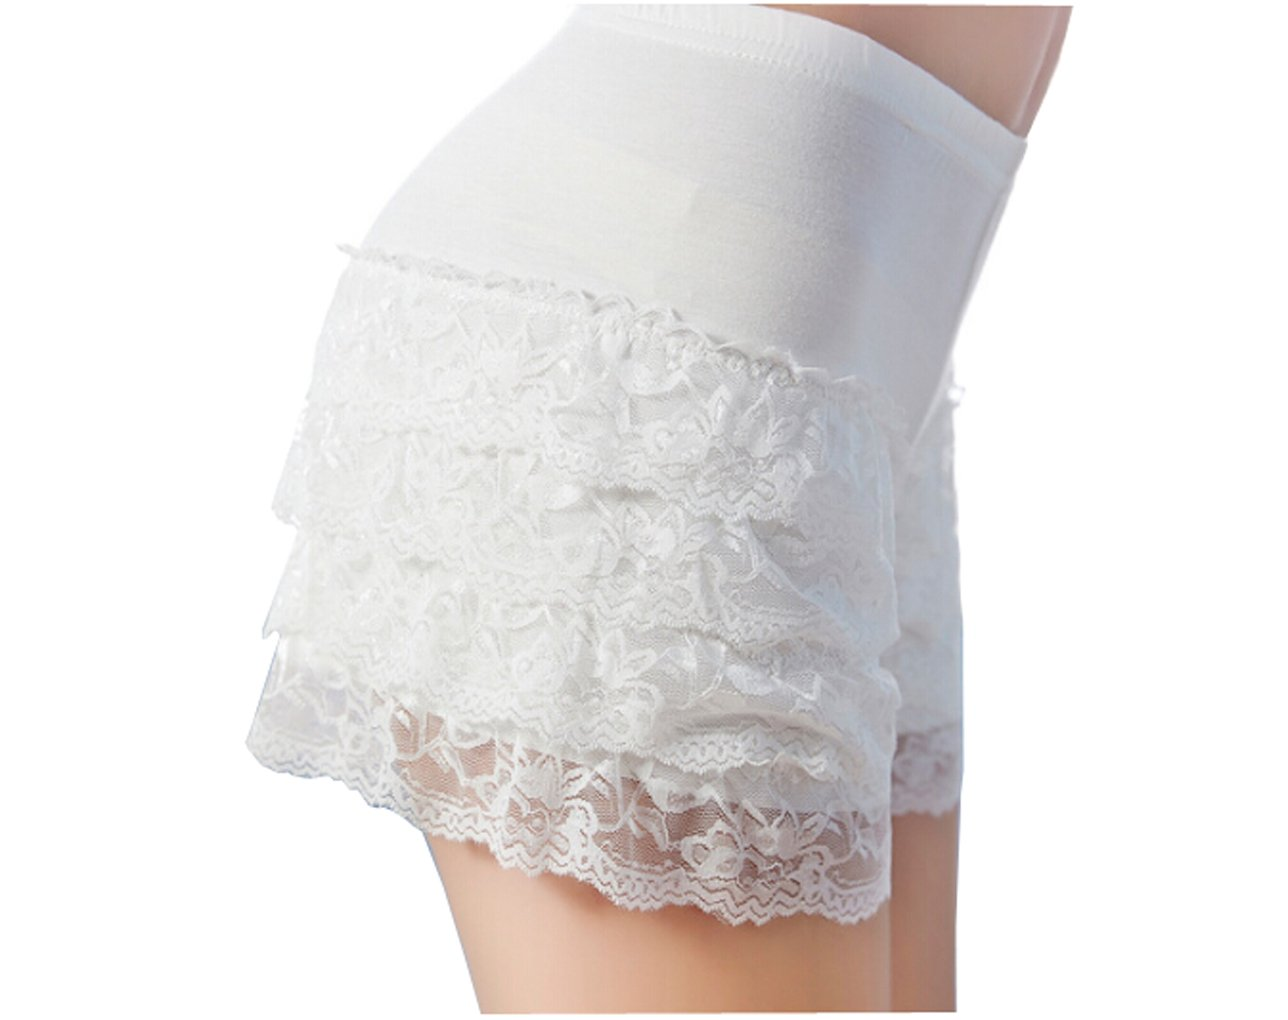 Women Ladies Stretchy Sexy Lace Trims Shorts Hot Pants Leggings Tights Modal Underwear Panty Underpants Slipshort